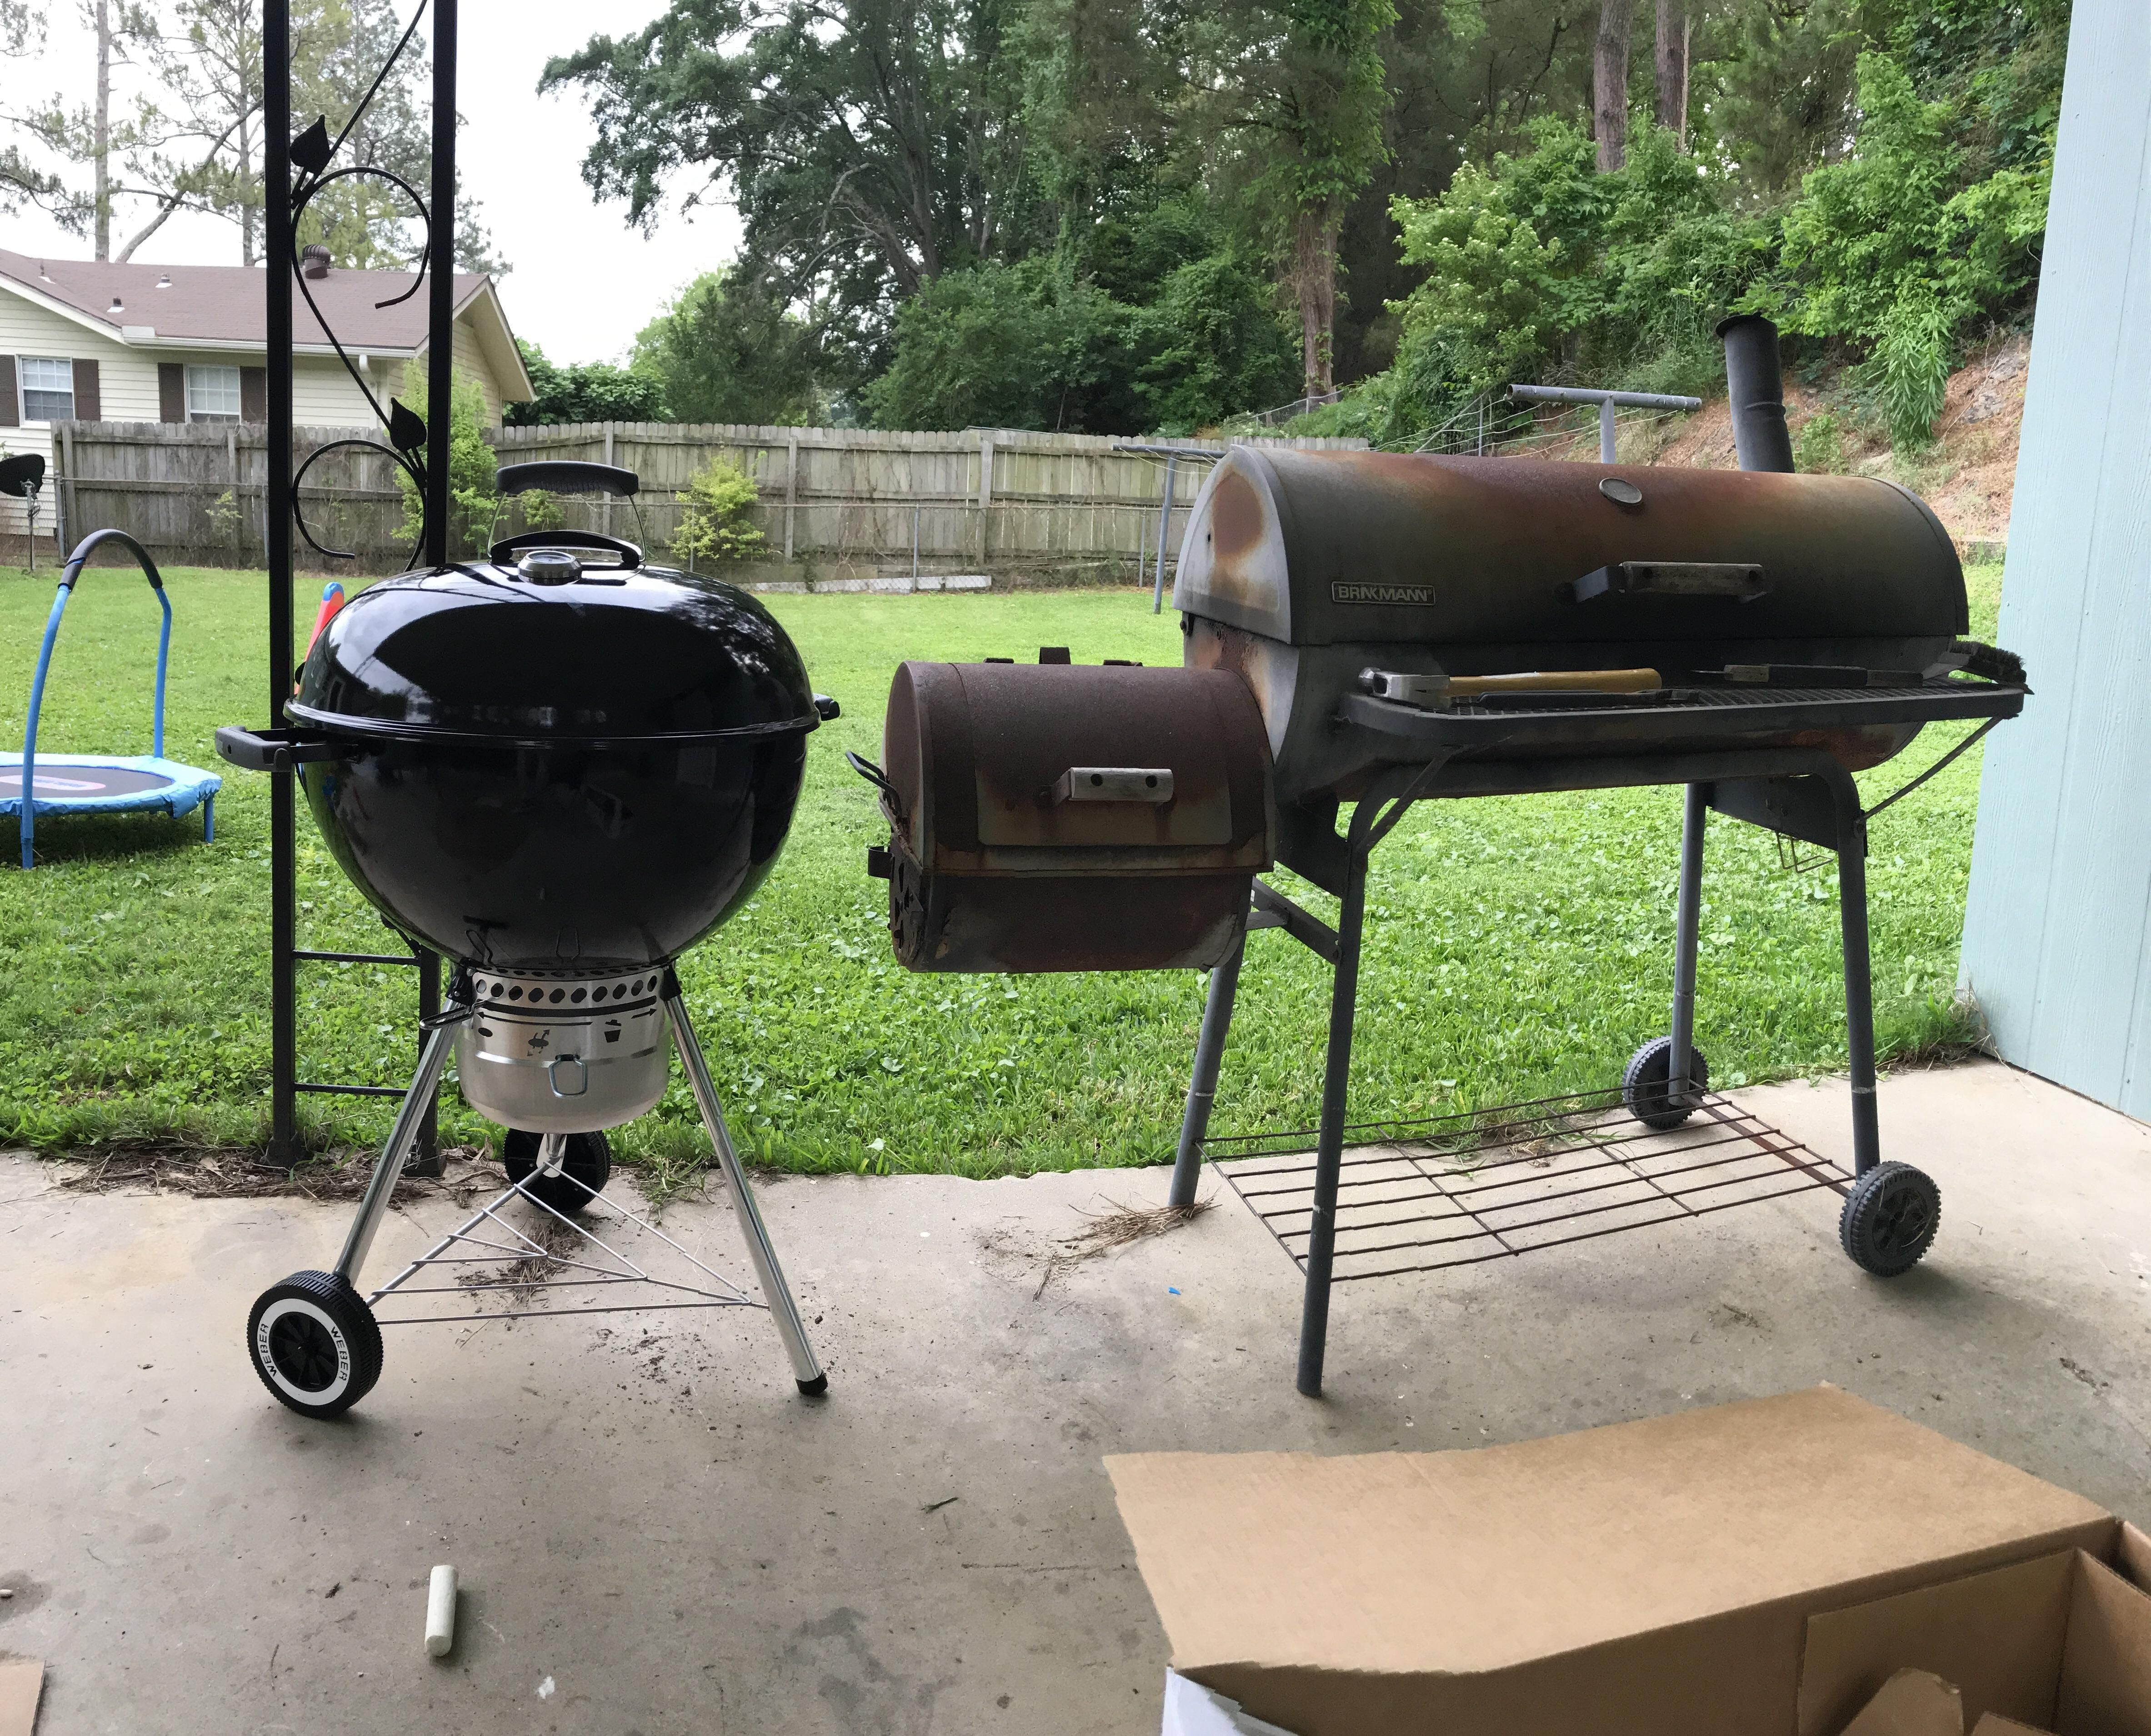 Upgraded my grill the old rusty smoker will now only be a smoker